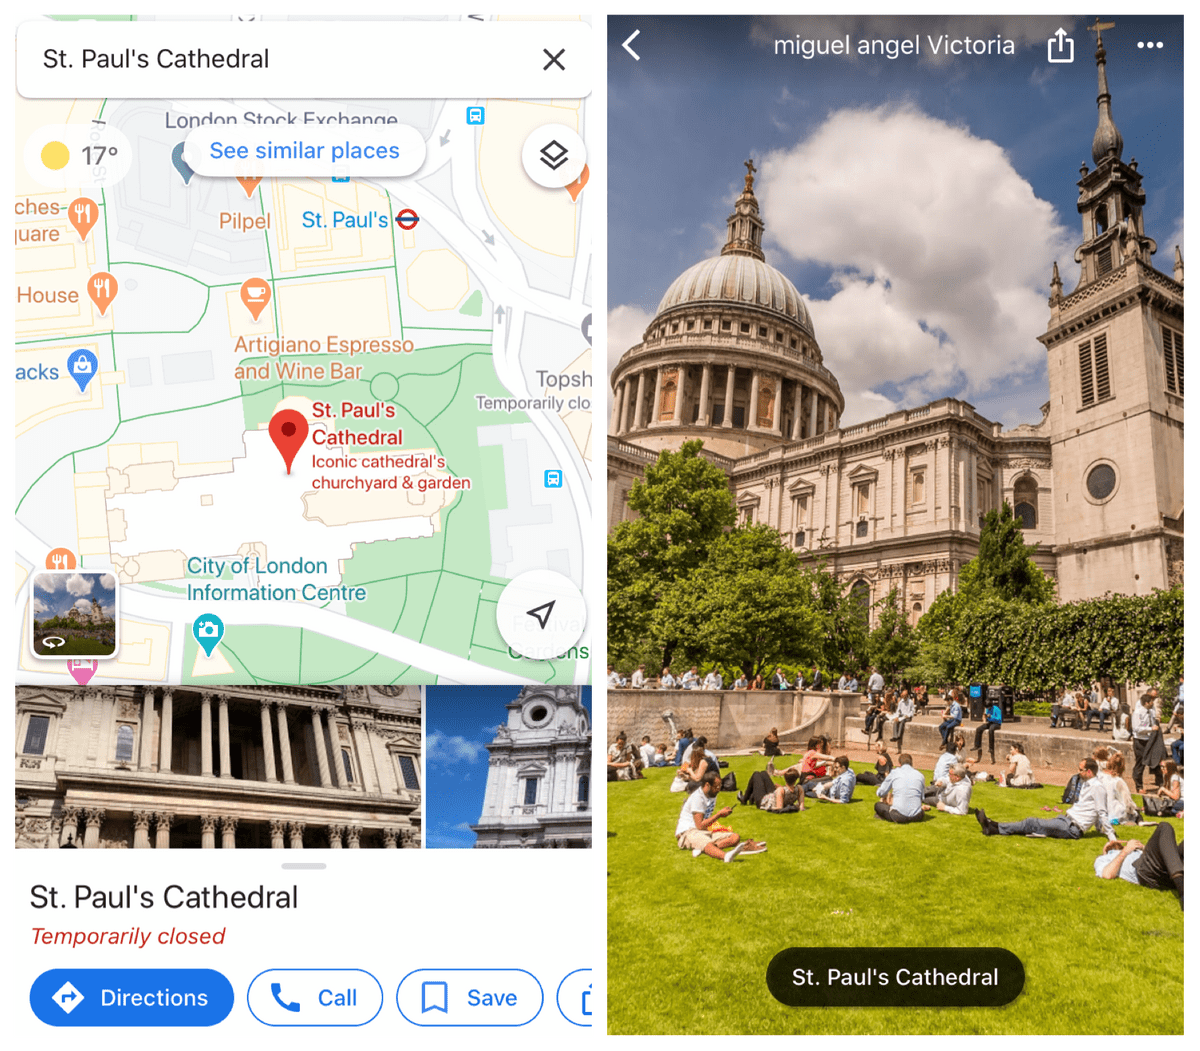 The example of how to use the panorama view in Google maps from the phone